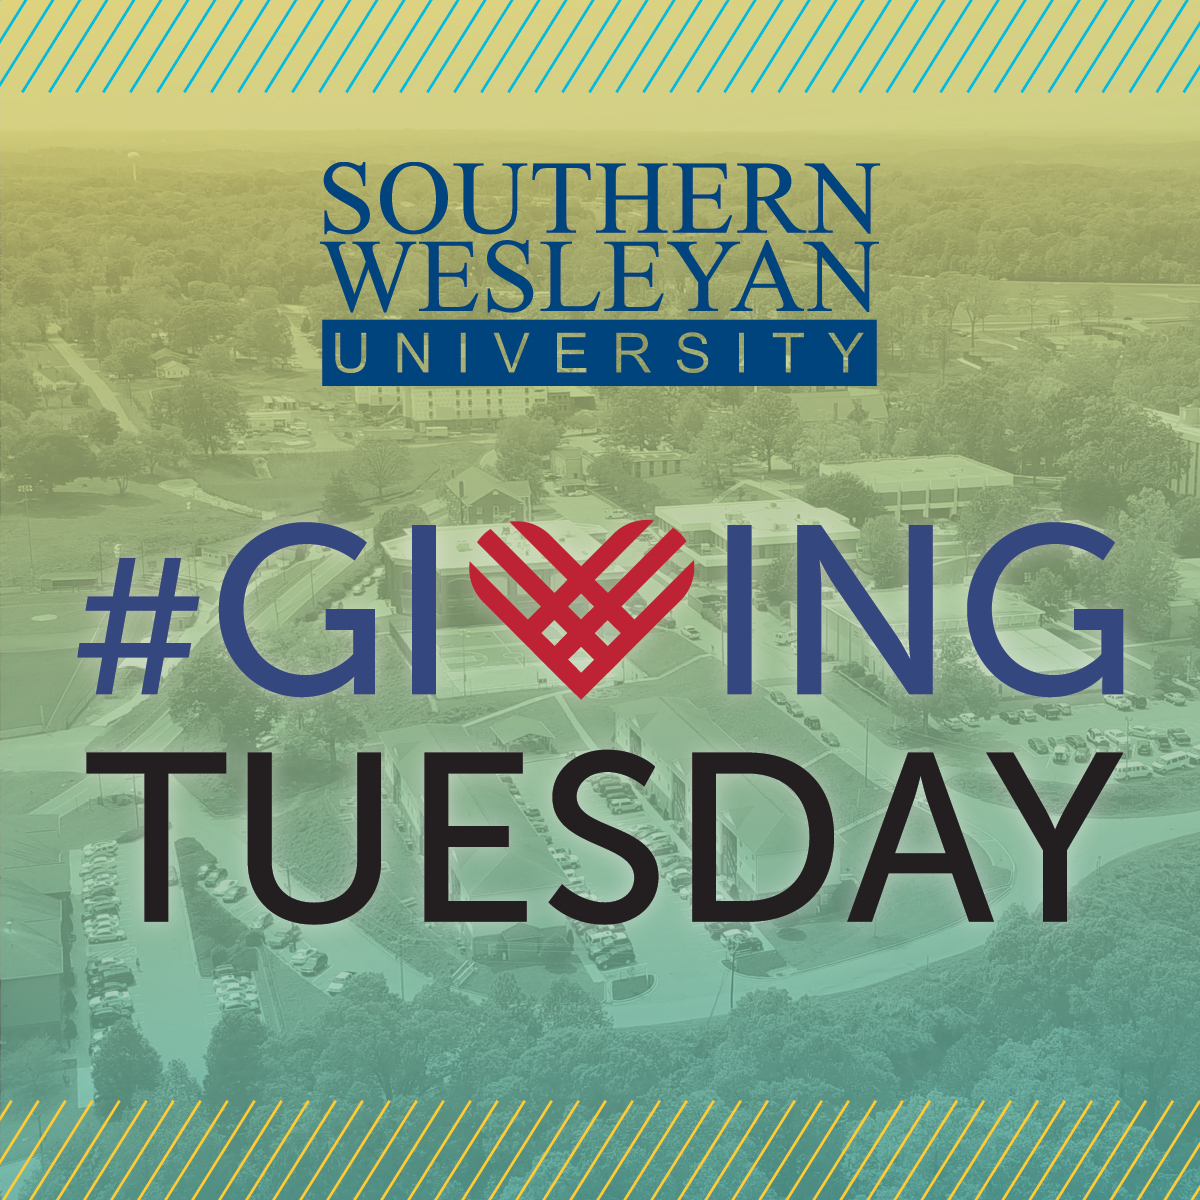 Alumni of SWU are invited to give back to this Christian college community to further the mission of Christ.